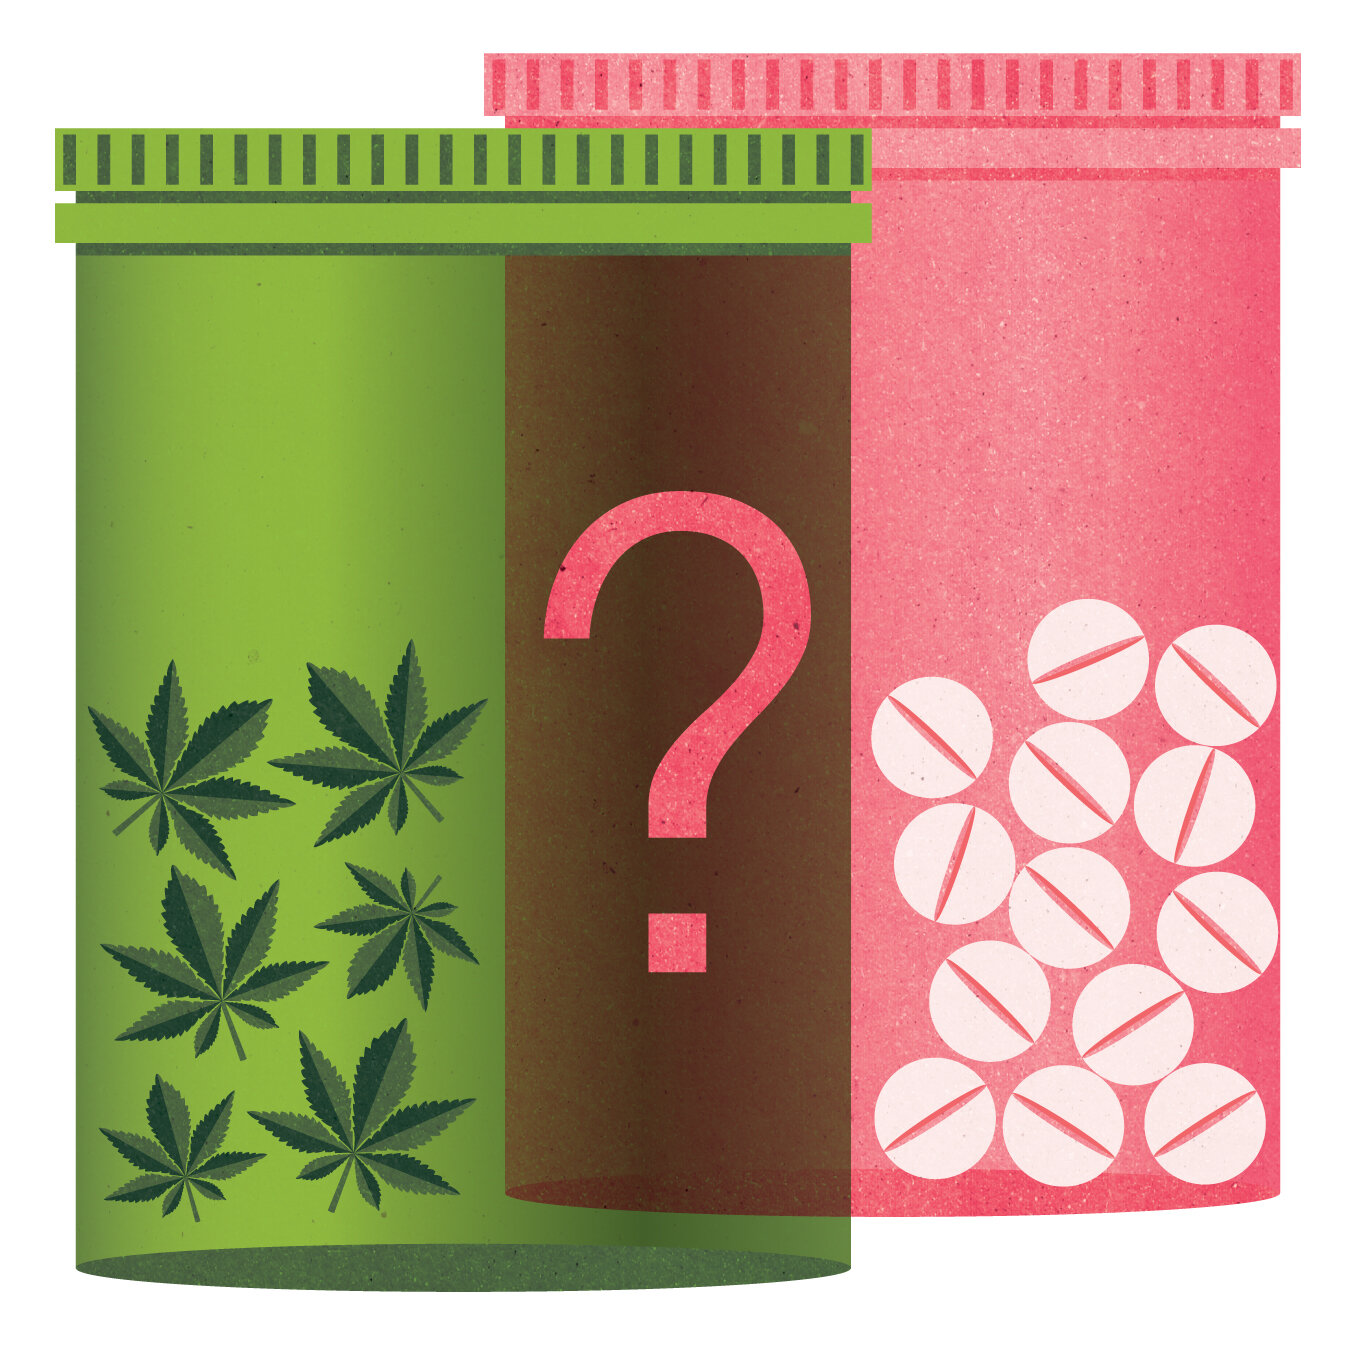 Project:    Weed – Medical or Recreational?,    Client:    Scholastic Inc. in partnership with the National Institute on Drug Abuse (NIDA), 2019